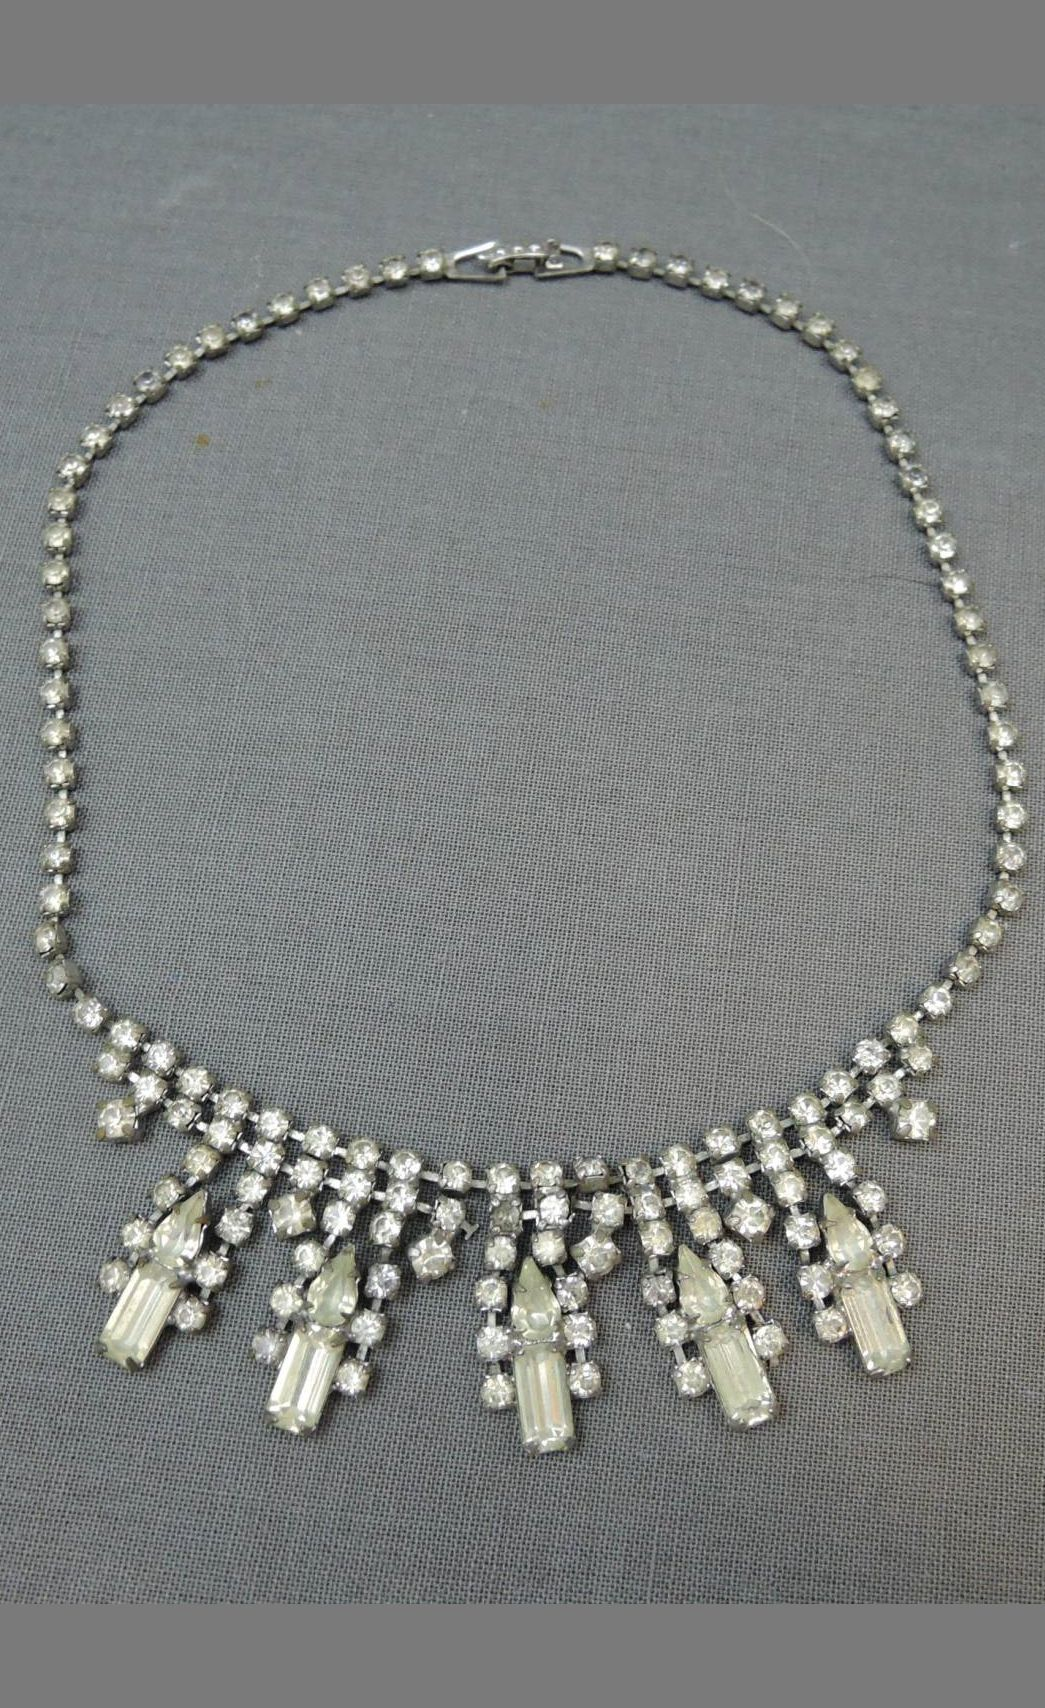 Vintage 1950s Rhinestone Necklace, Dangles, 14-1/2 inches, Wedding, Evening